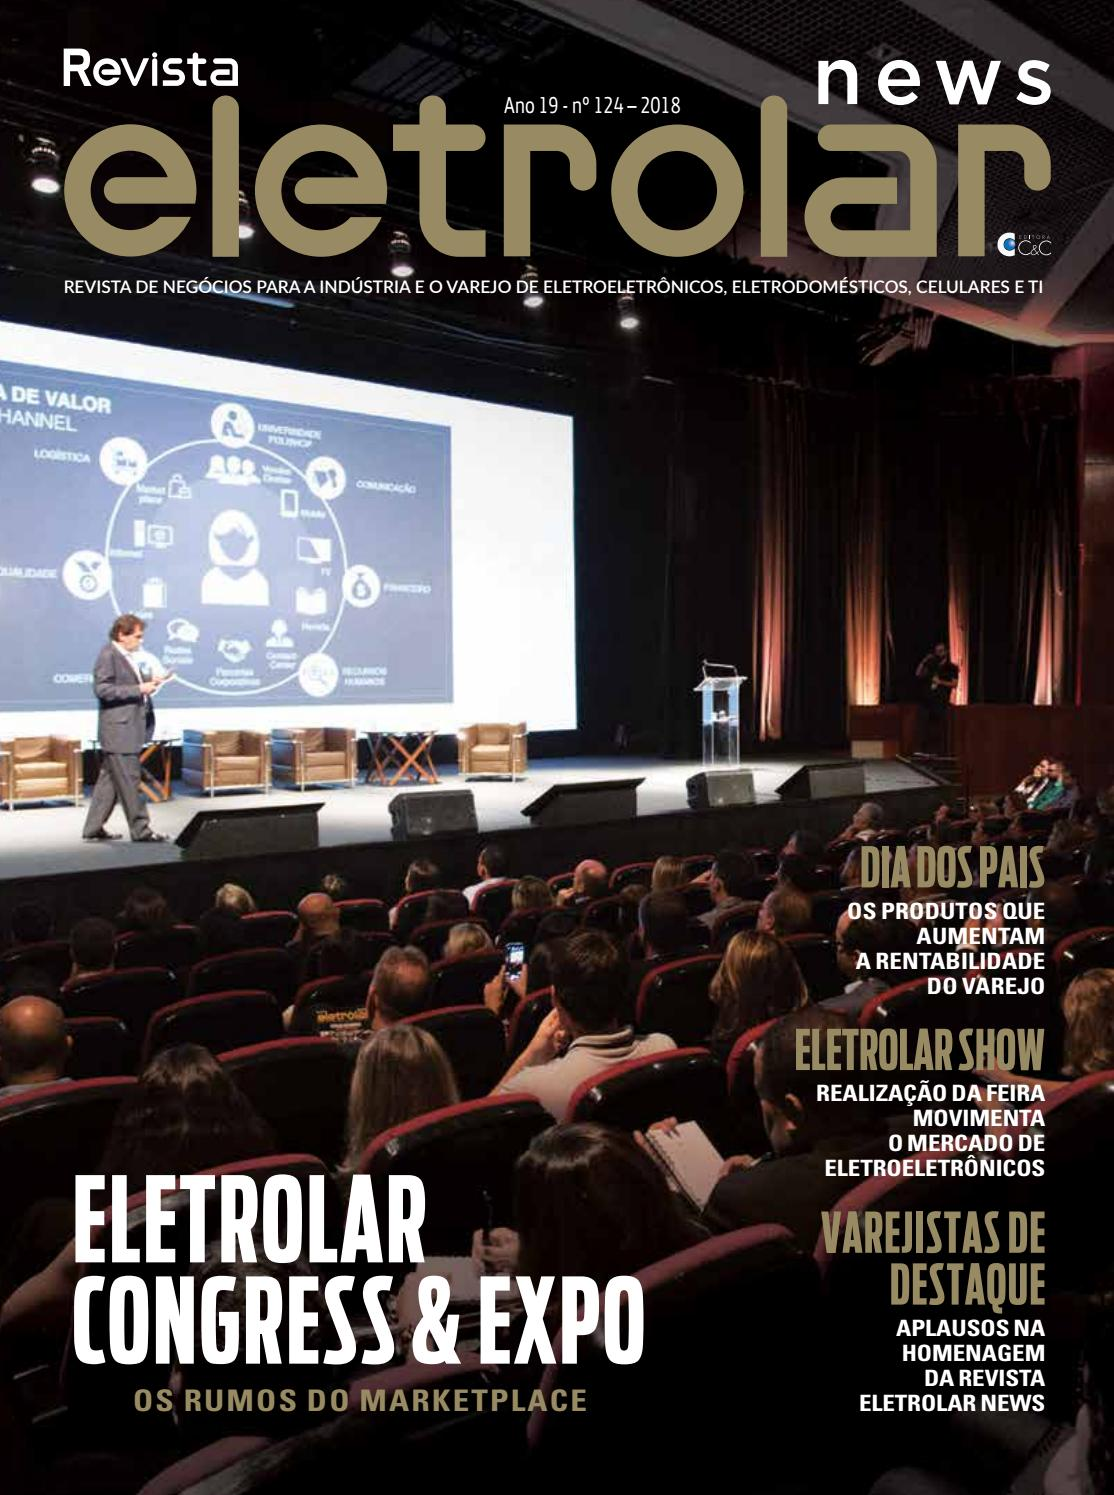 Revista Eletrolar News - Ed. 124 by Grupo Eletrolar - issuu 8b3c8068fc